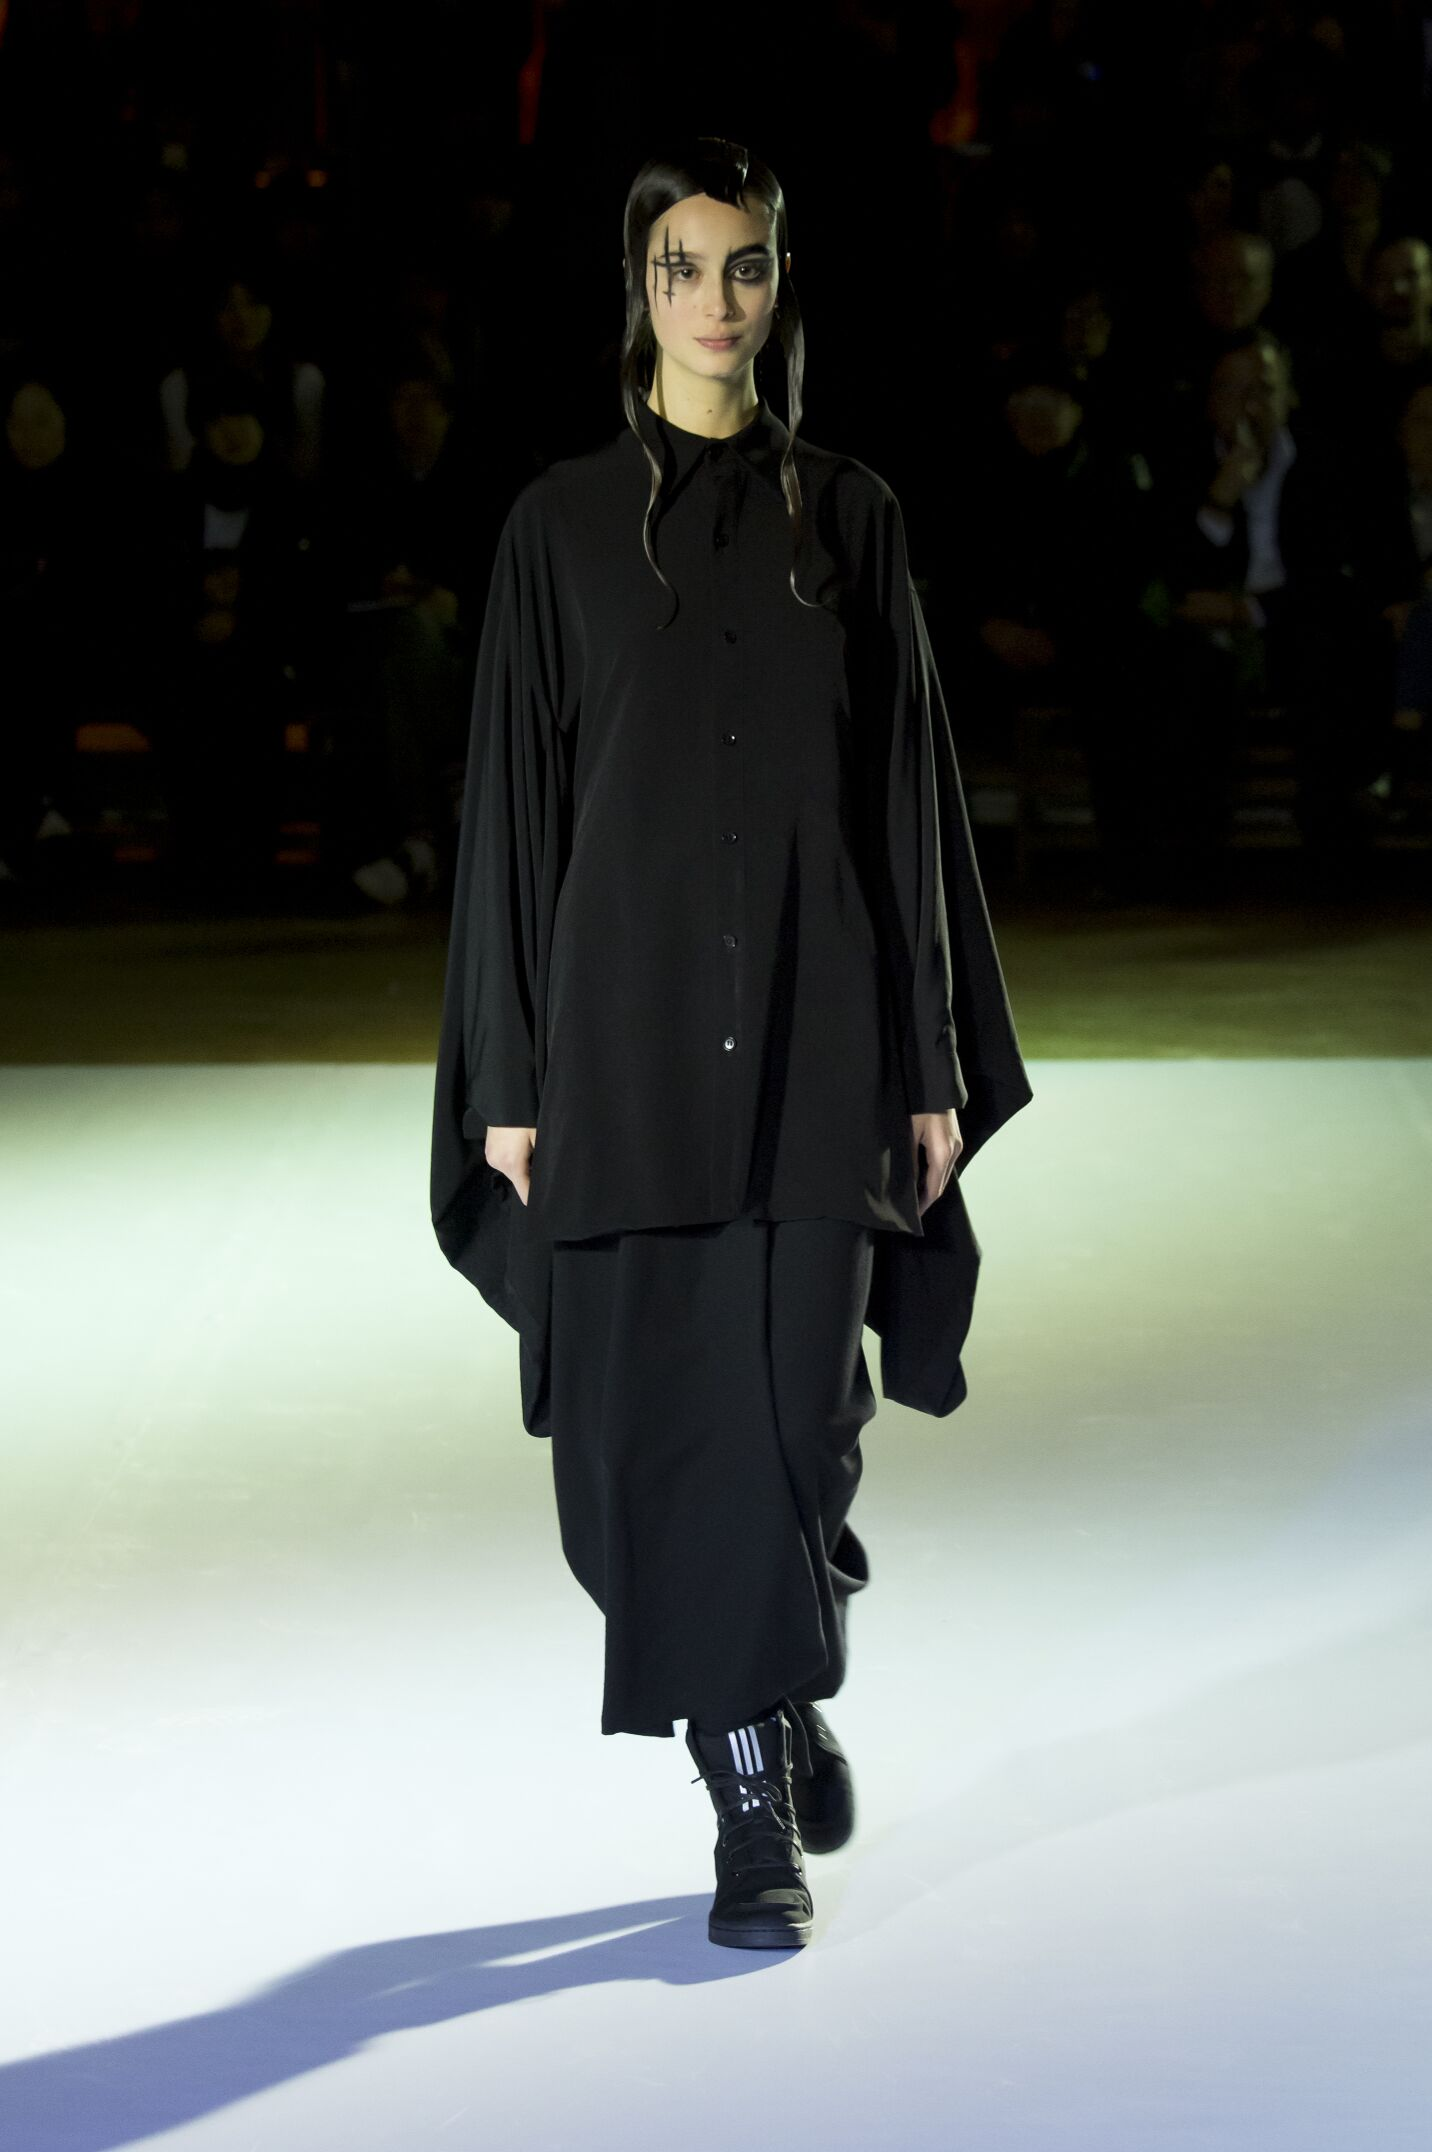 YOHJI YAMAMOTO FALL WINTER 2015-16 WOMEN S COLLECTION  f83f69531